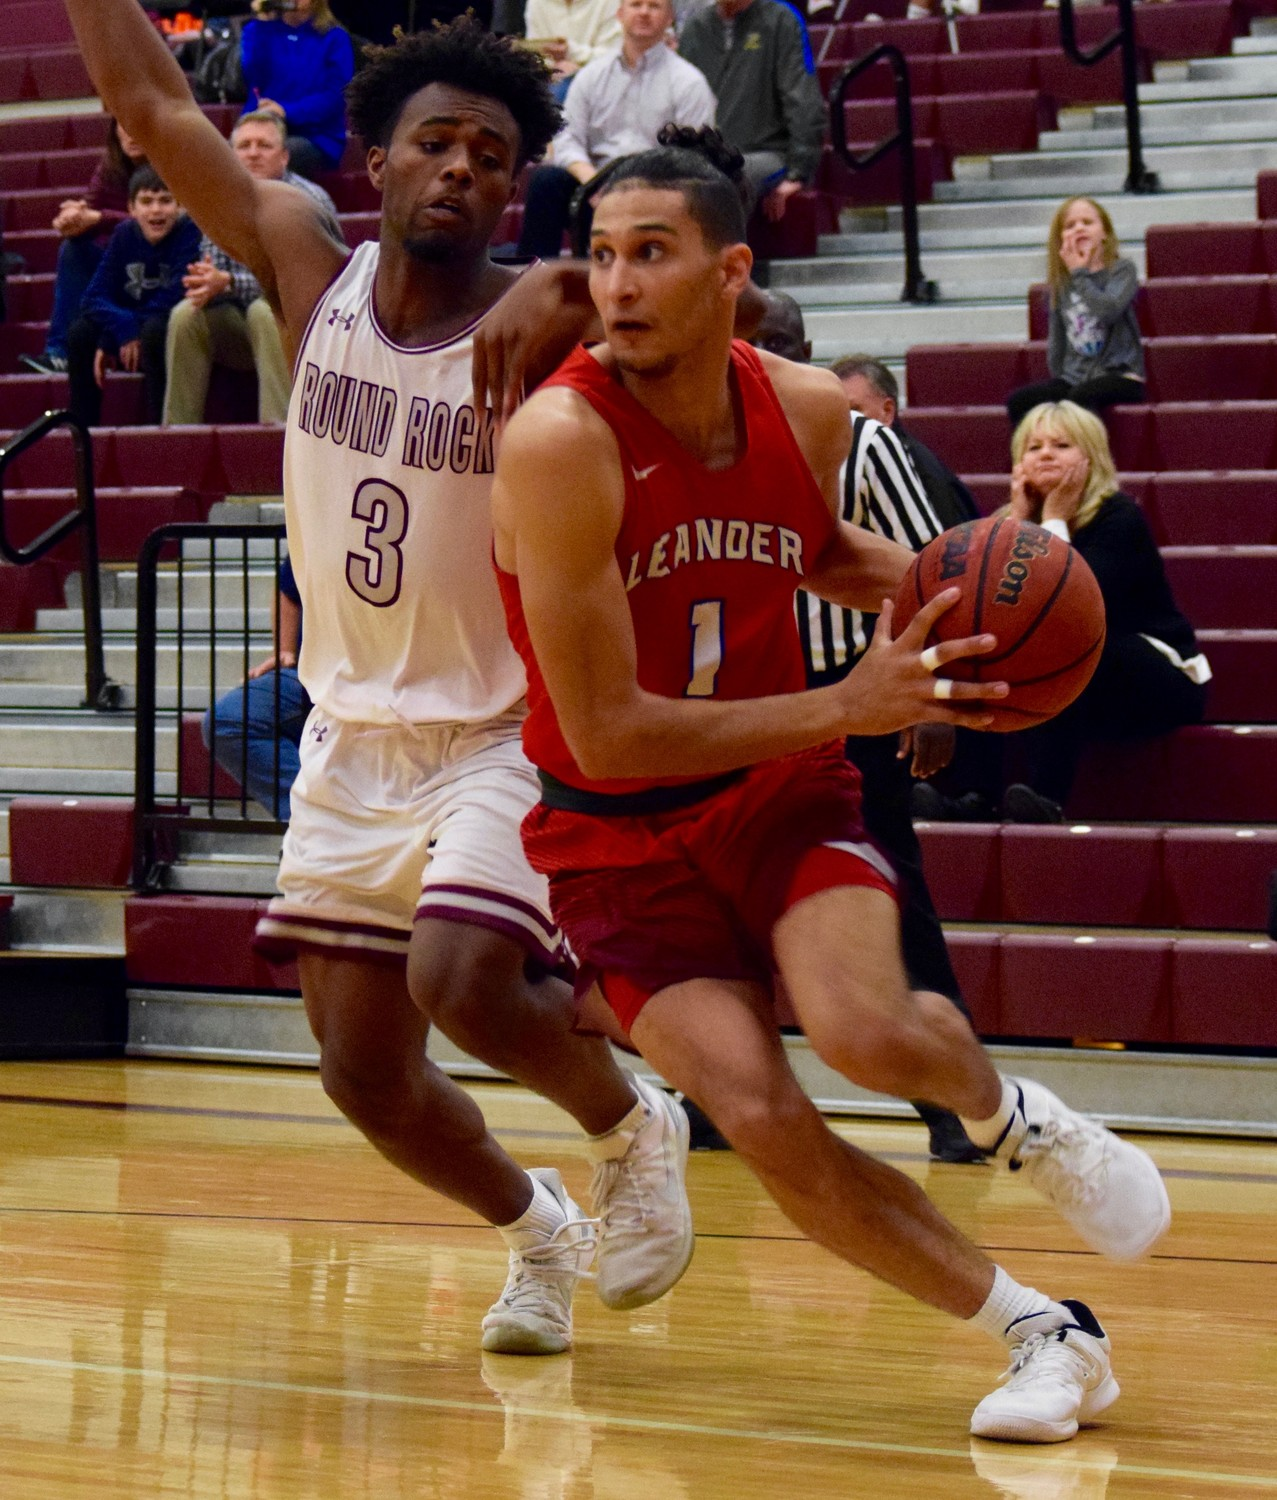 Kyce Wilson scored nine points and Leander beat Round Rock 45-38 on Tuesday night Round Rock High School.